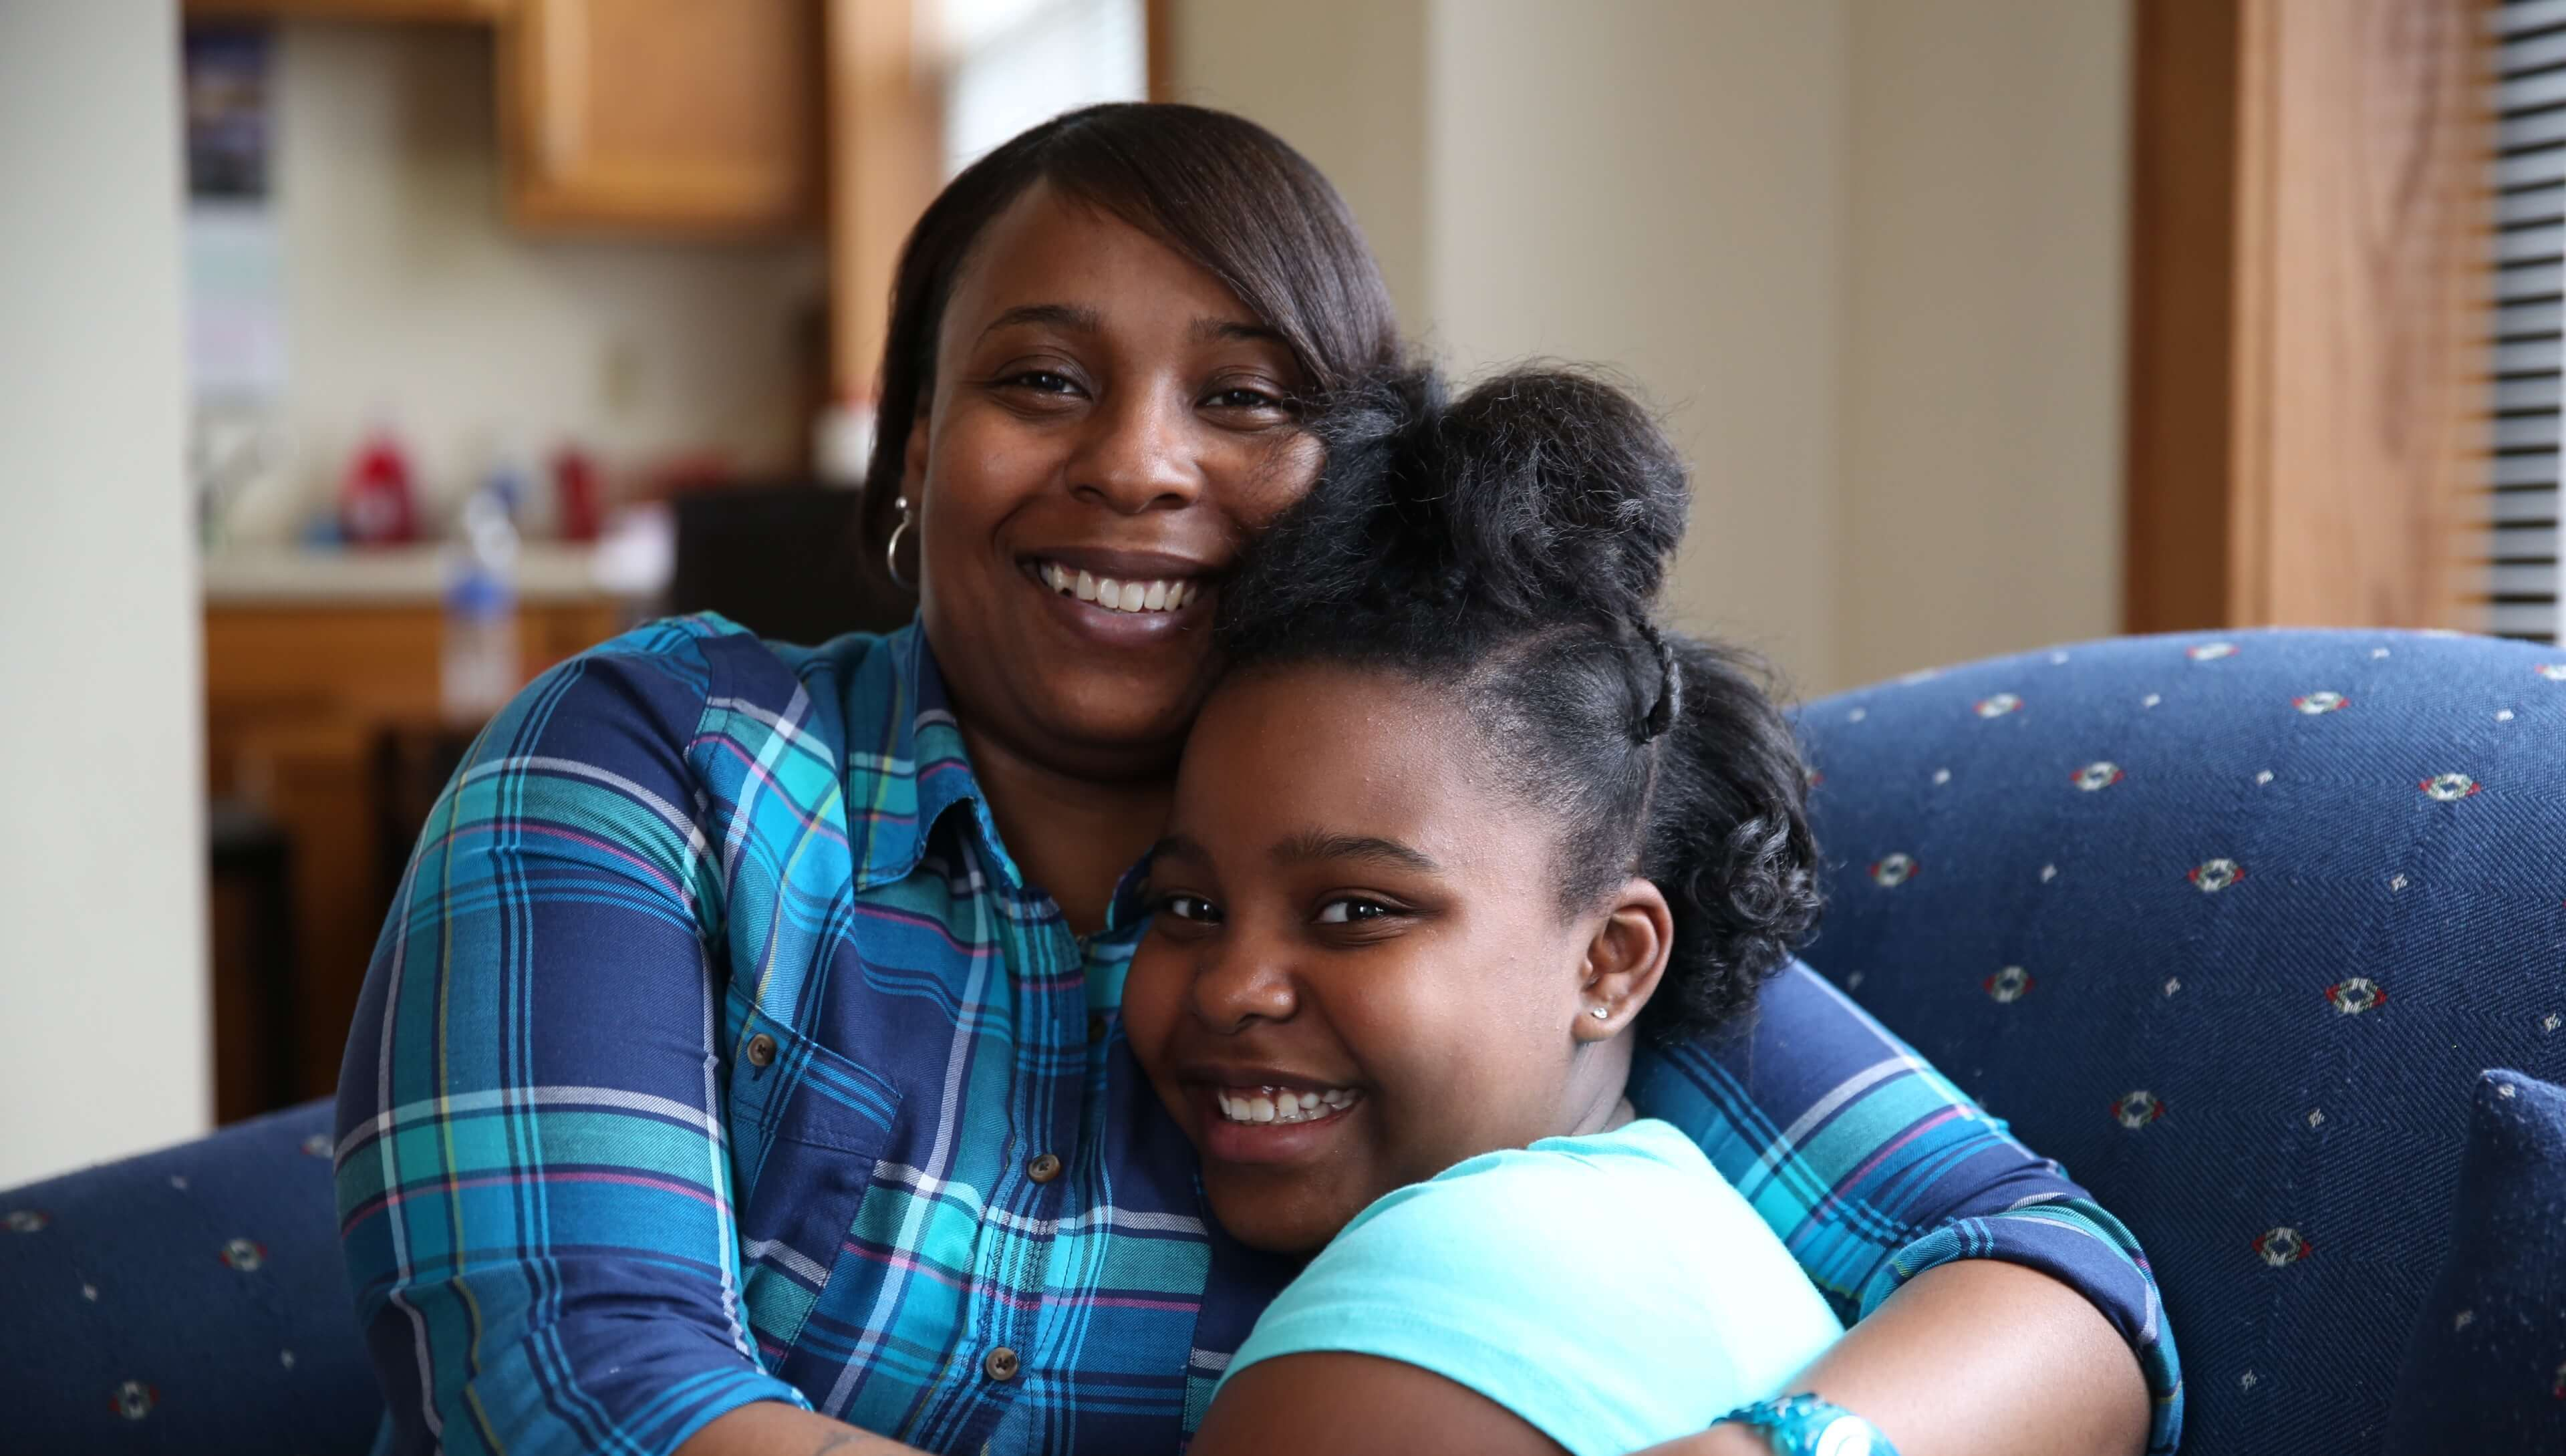 Shalonda and her daughter